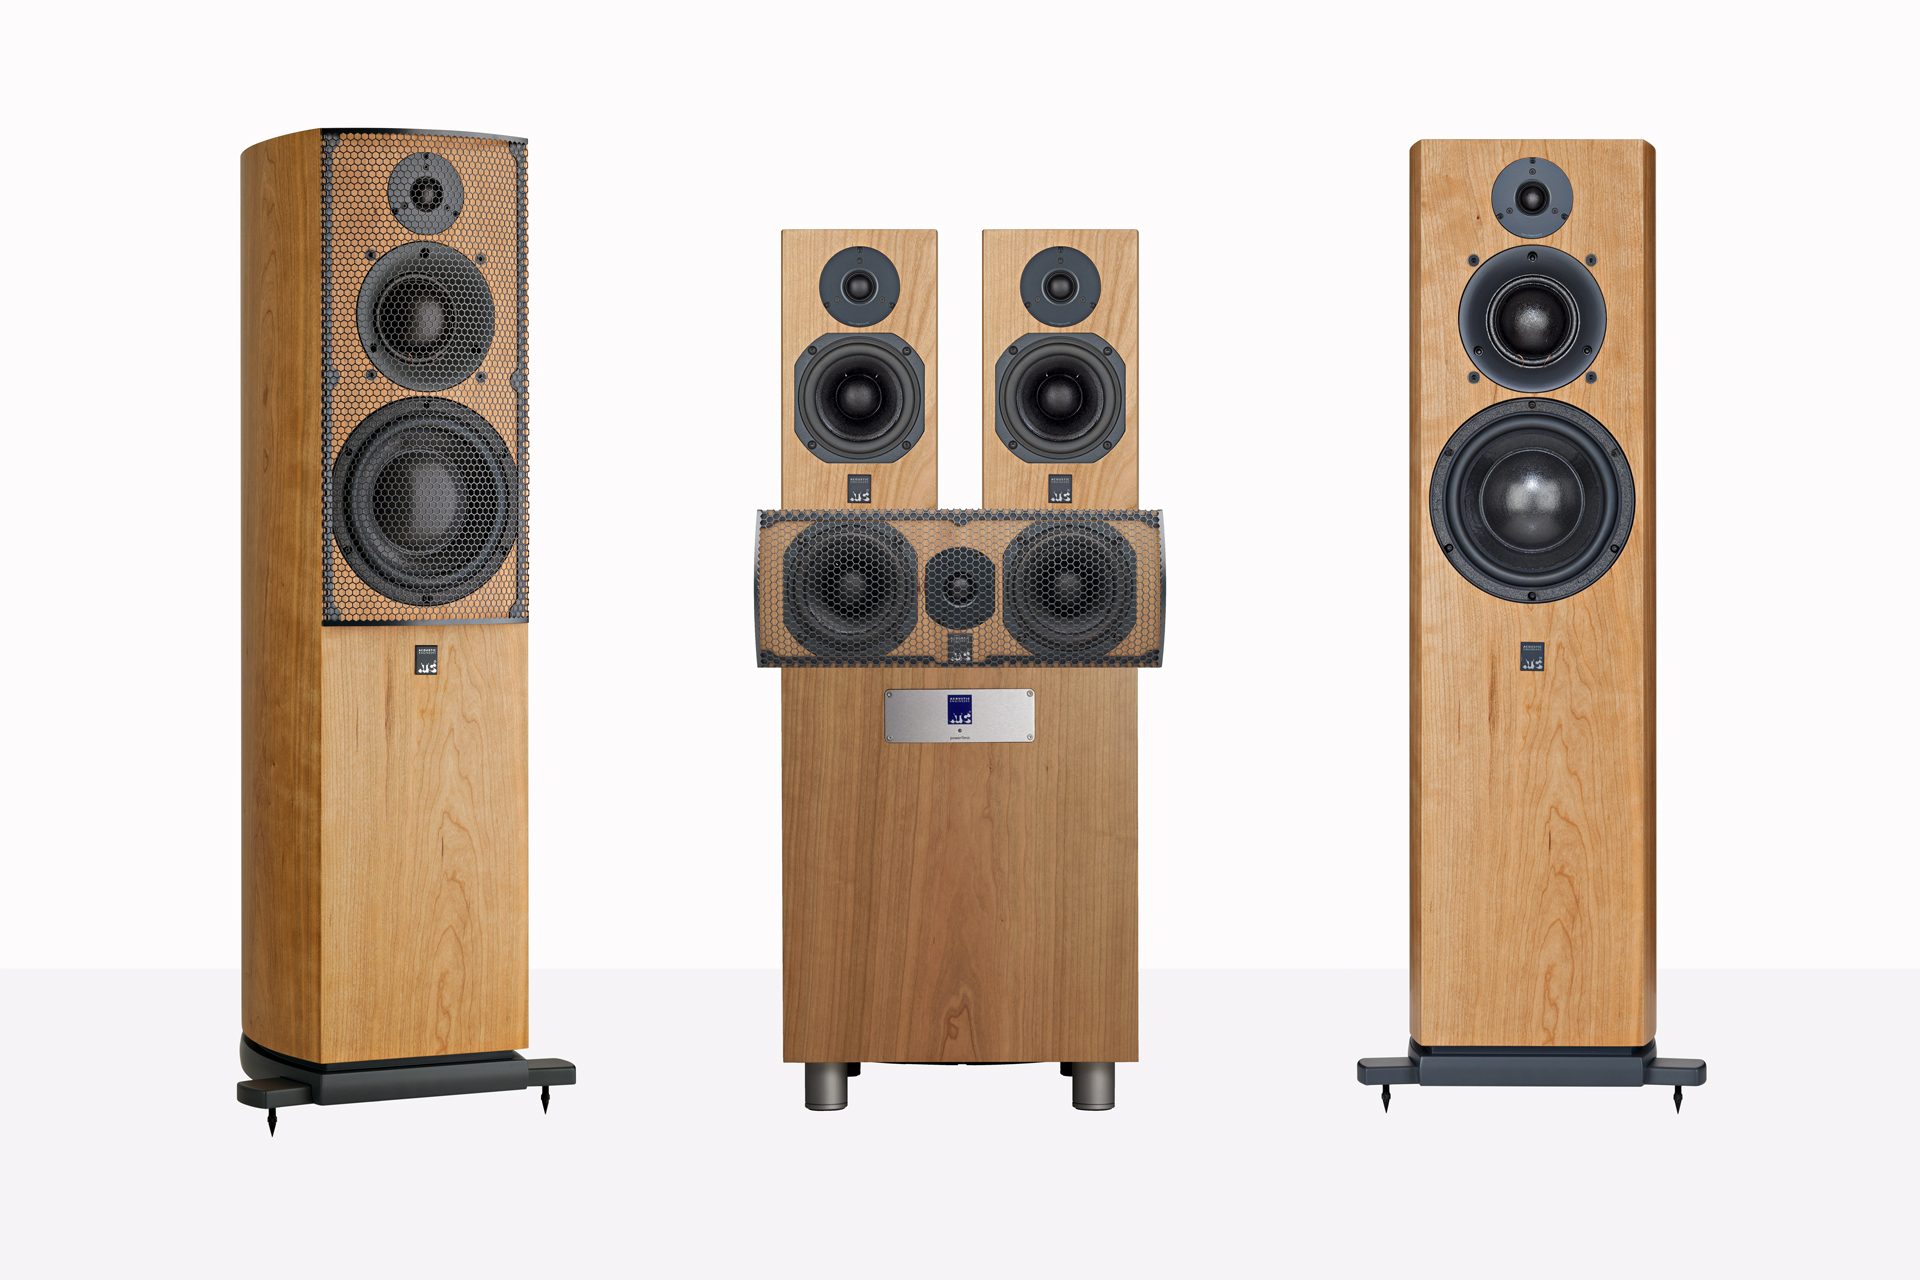 ATC SCM40 5.1 home theater system